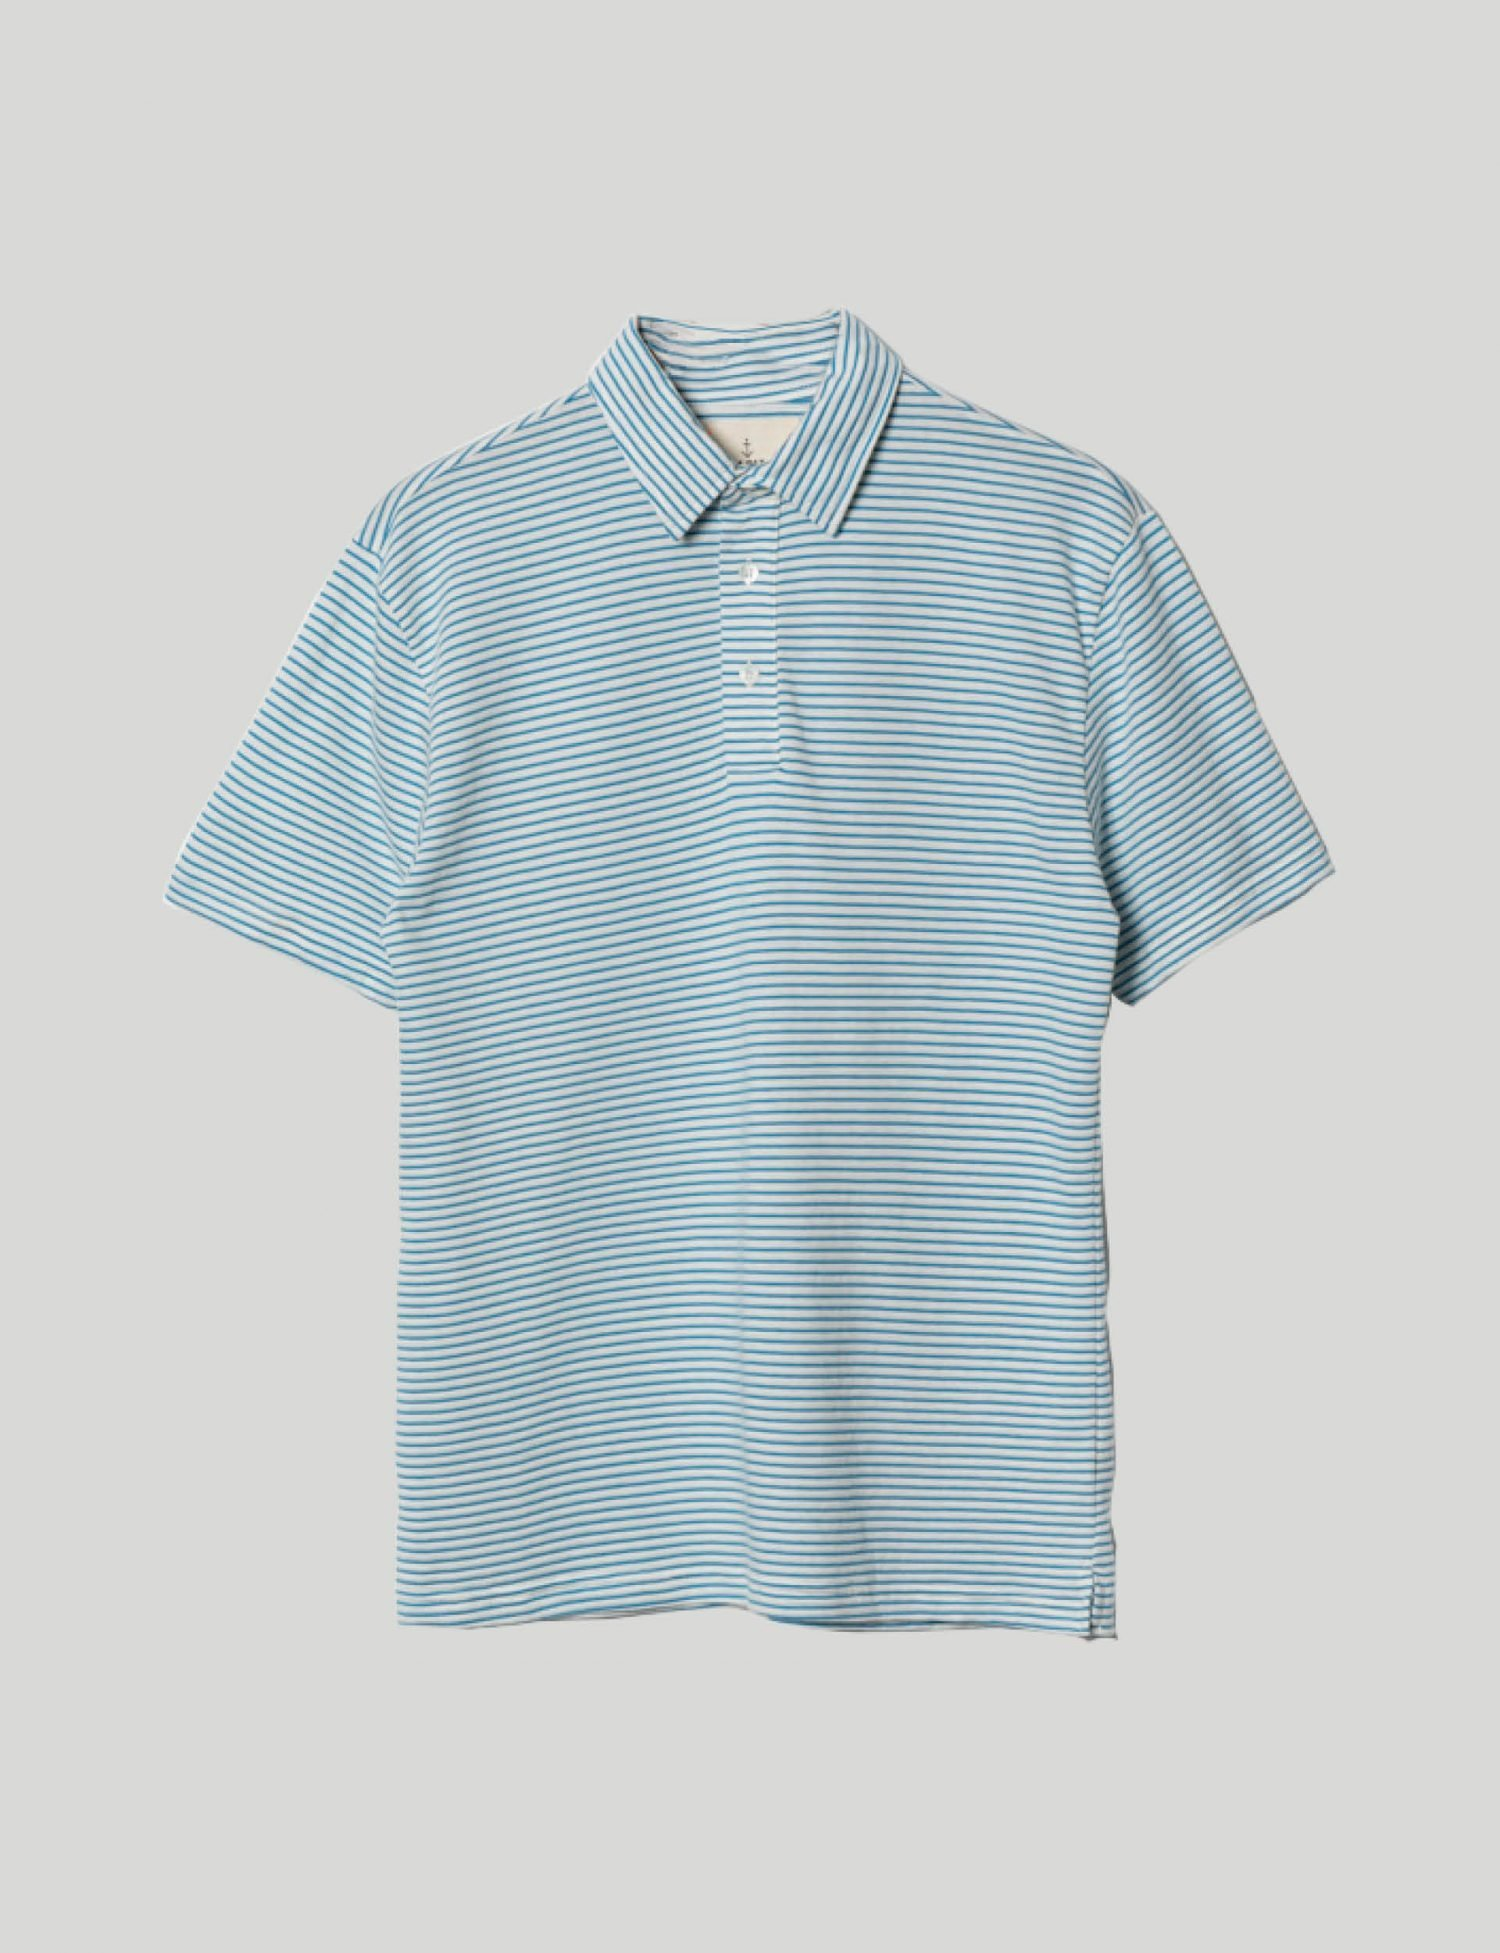 Castart - La Paz - Leao Polo - Striped Blue